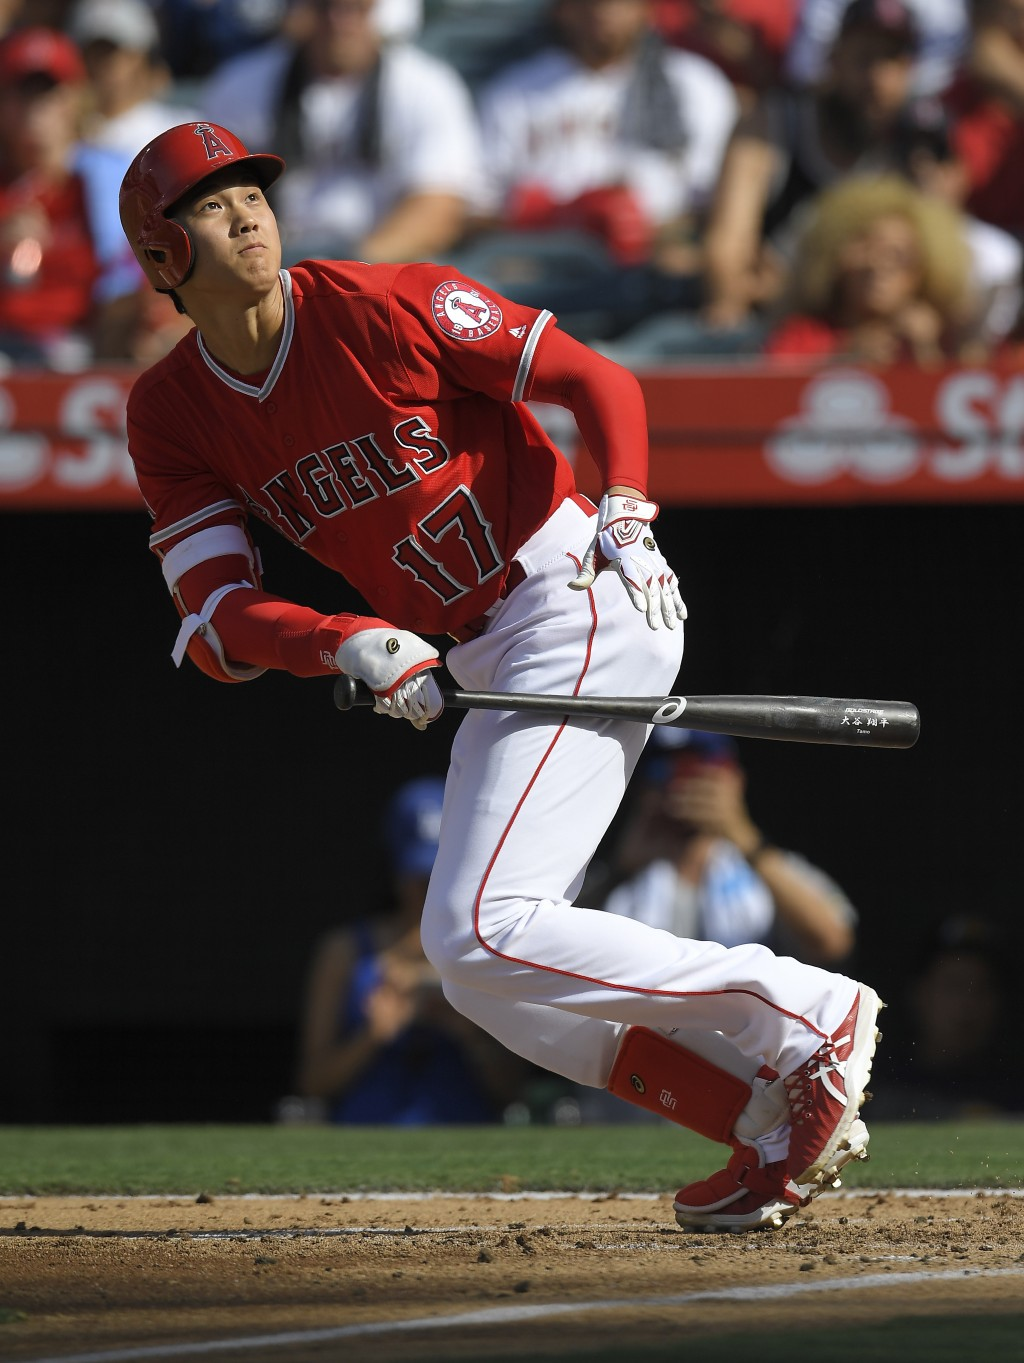 Los Angeles Angels' Shohei Ohtani, of Japan, runs to first as he bunts foul during the second inning of a baseball game against the Los Angeles Dodger